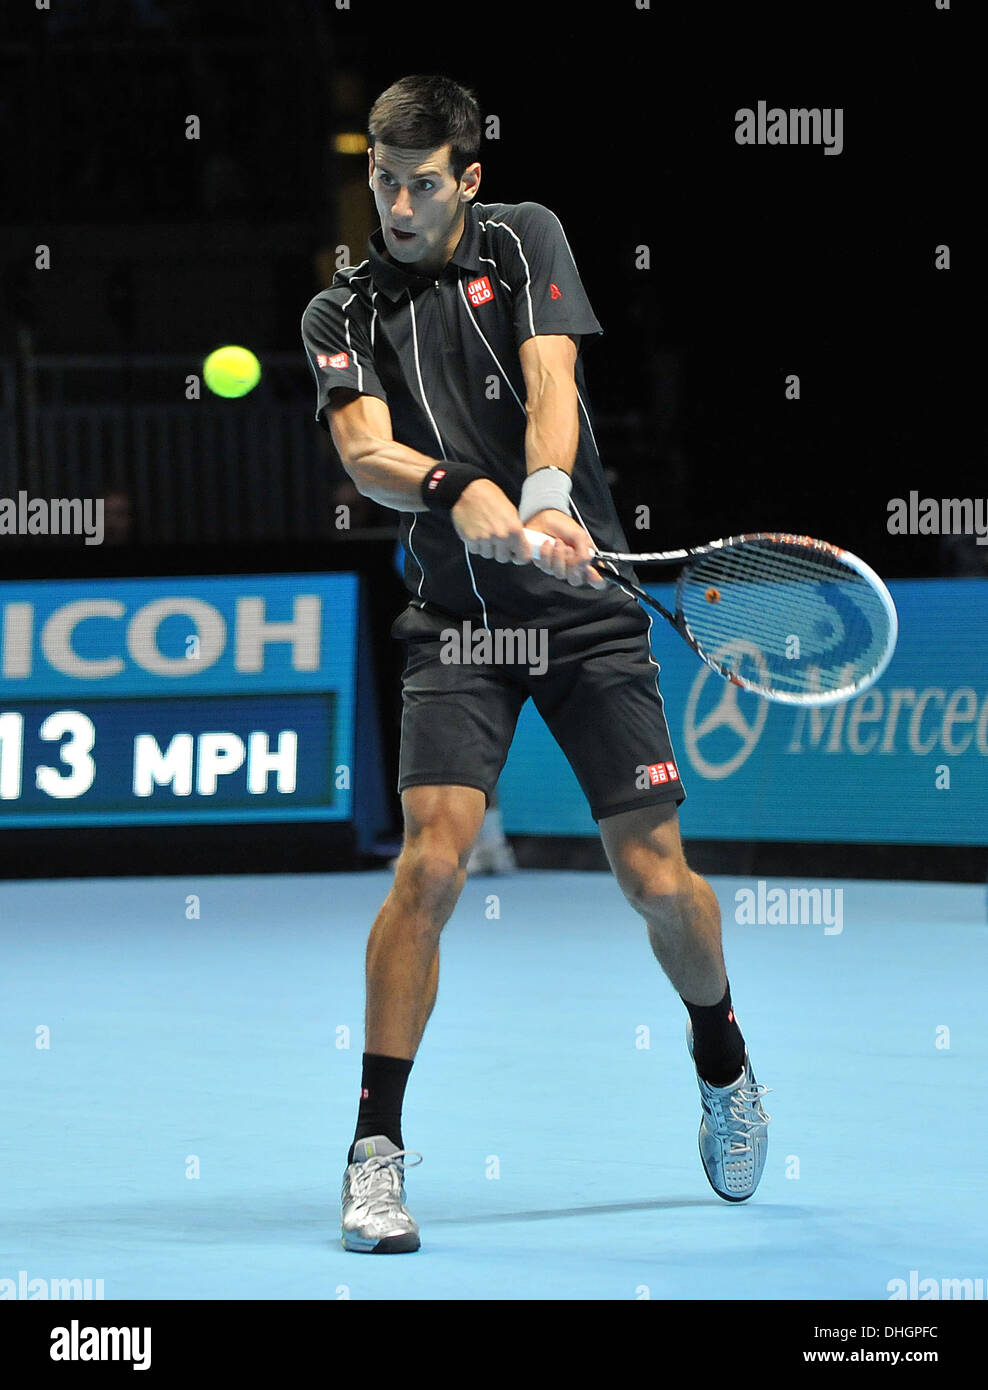 Serbia's Novak Djokovic on his way to victory on day 6 of the Barclays ATP World Finals. - Stock Image